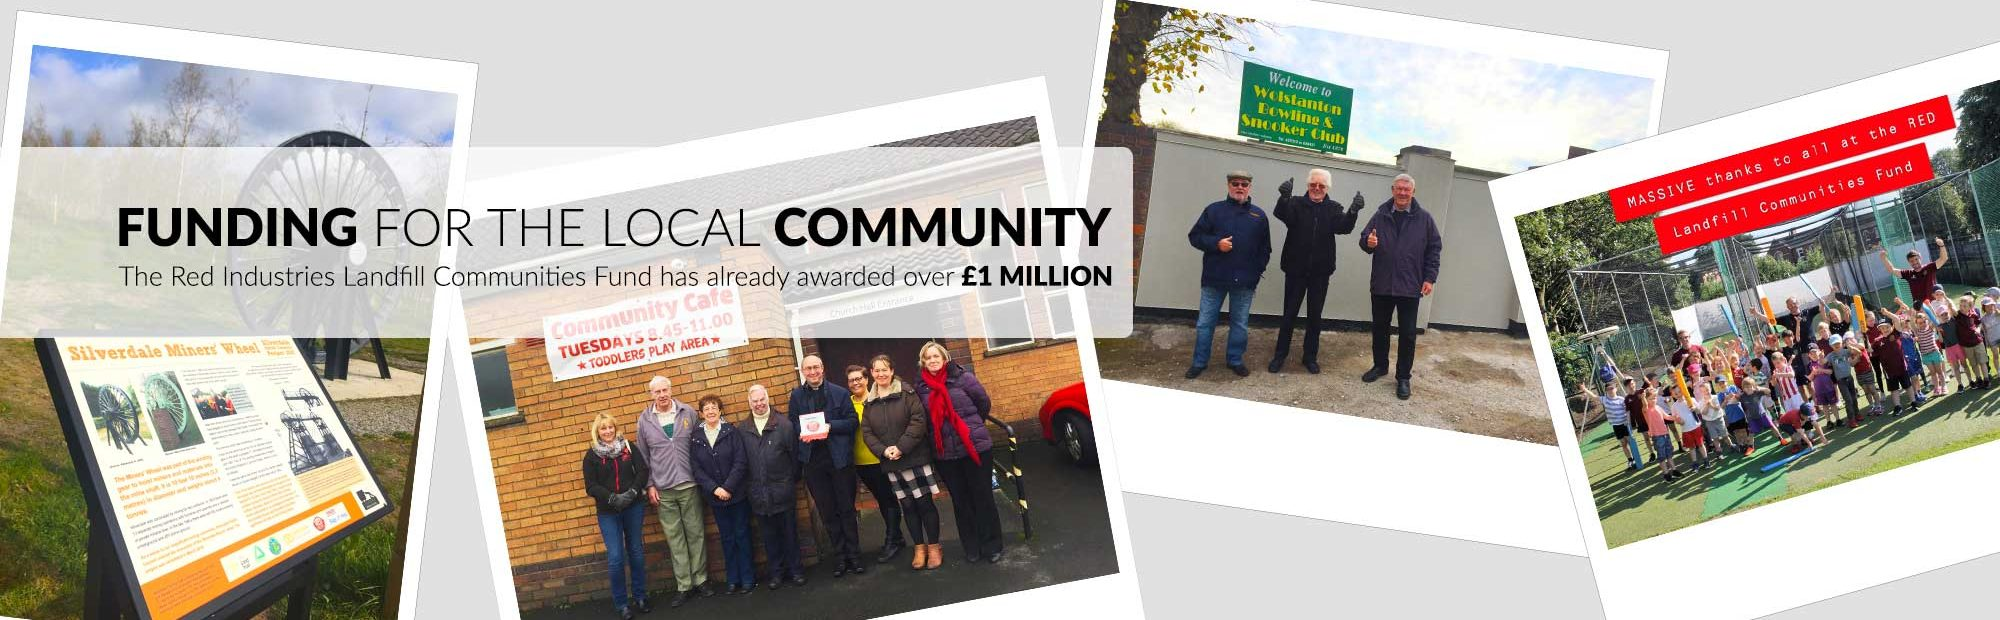 Red Industries Landfill Communities Fund